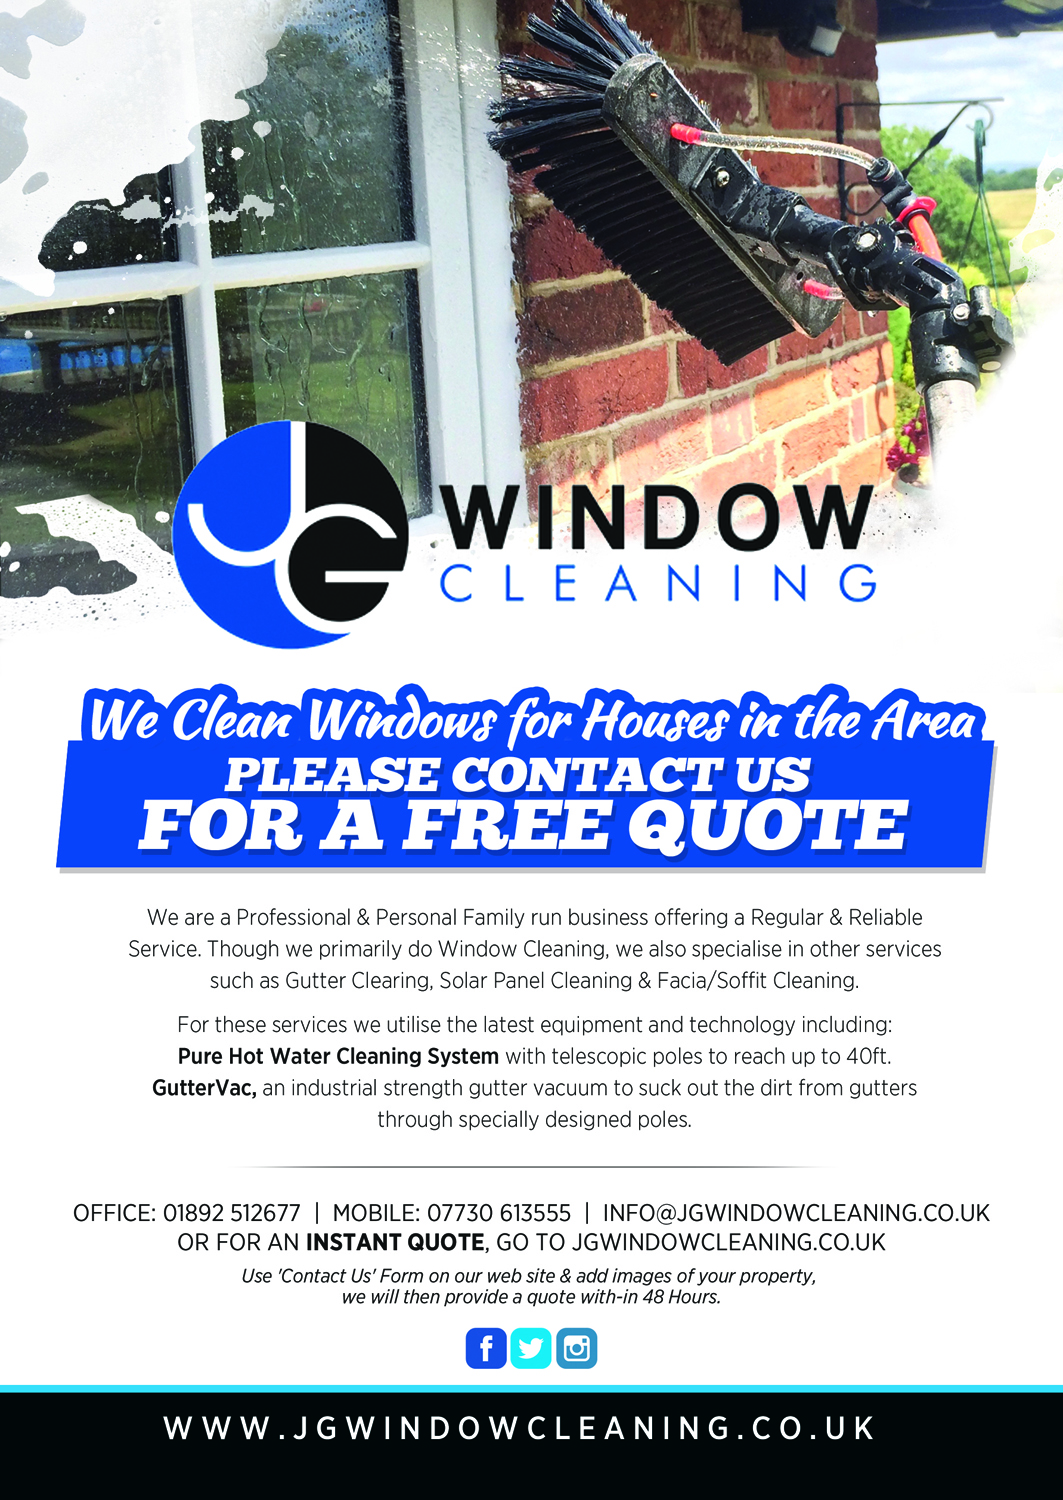 window cleaning flyers dolap magnetband co